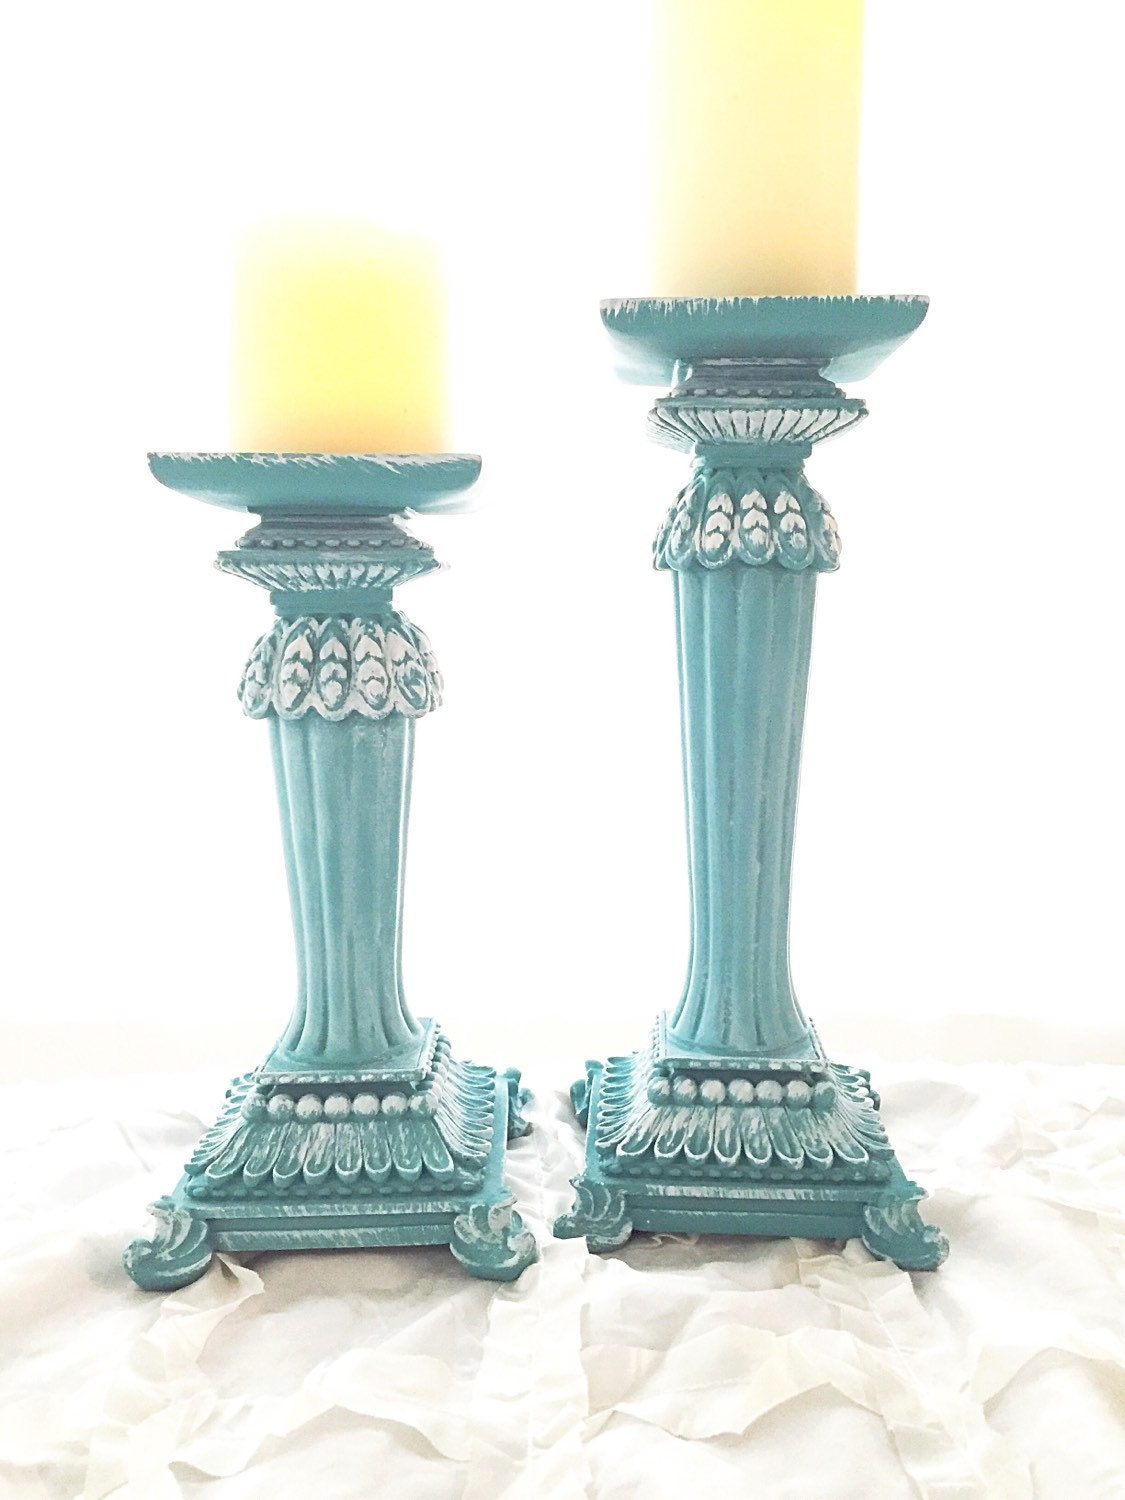 Turquoise Candle Holder found in: Barbwire Candle Holders - Set of 3, Turquoise Wood Wall Candle Holder, Aztec Diamond Turquoise Candle Holder, Turquoise Feather Candle Holder, Crackled Turquoise Glass Candle Holder, Tequila Stave.